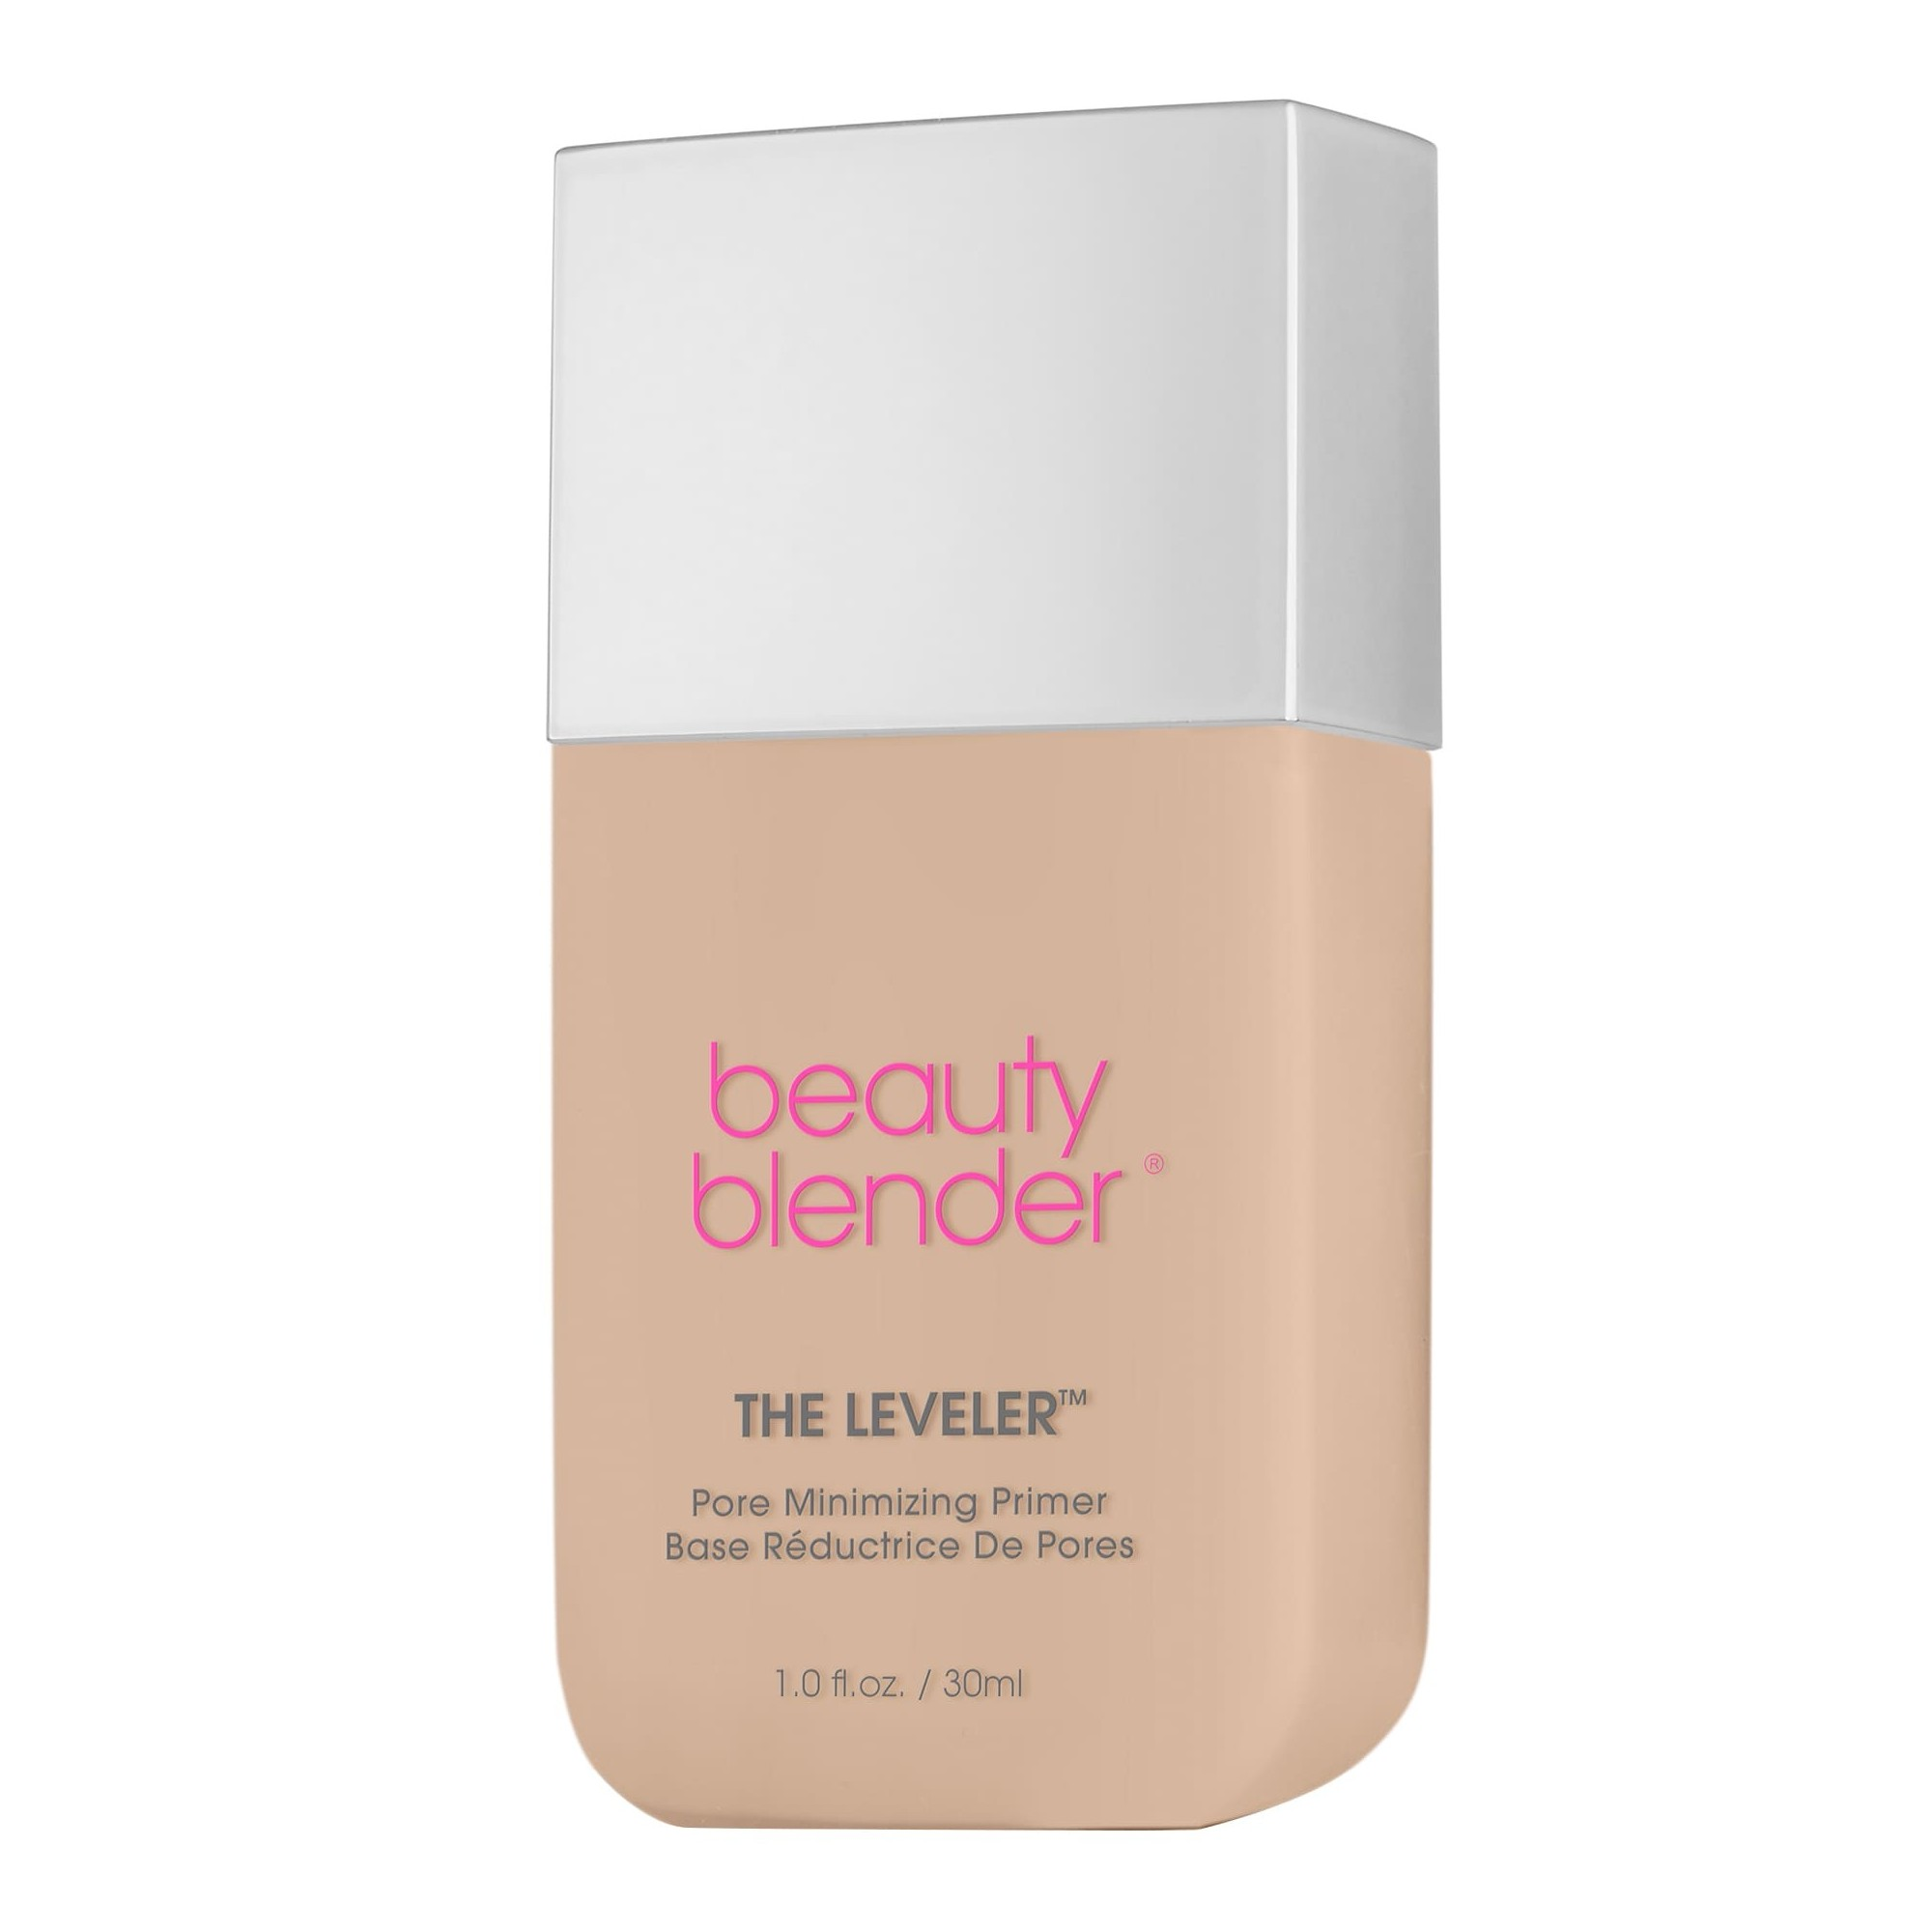 BeautyBlender The Leveler Pore Minimizing Primer light - Medium